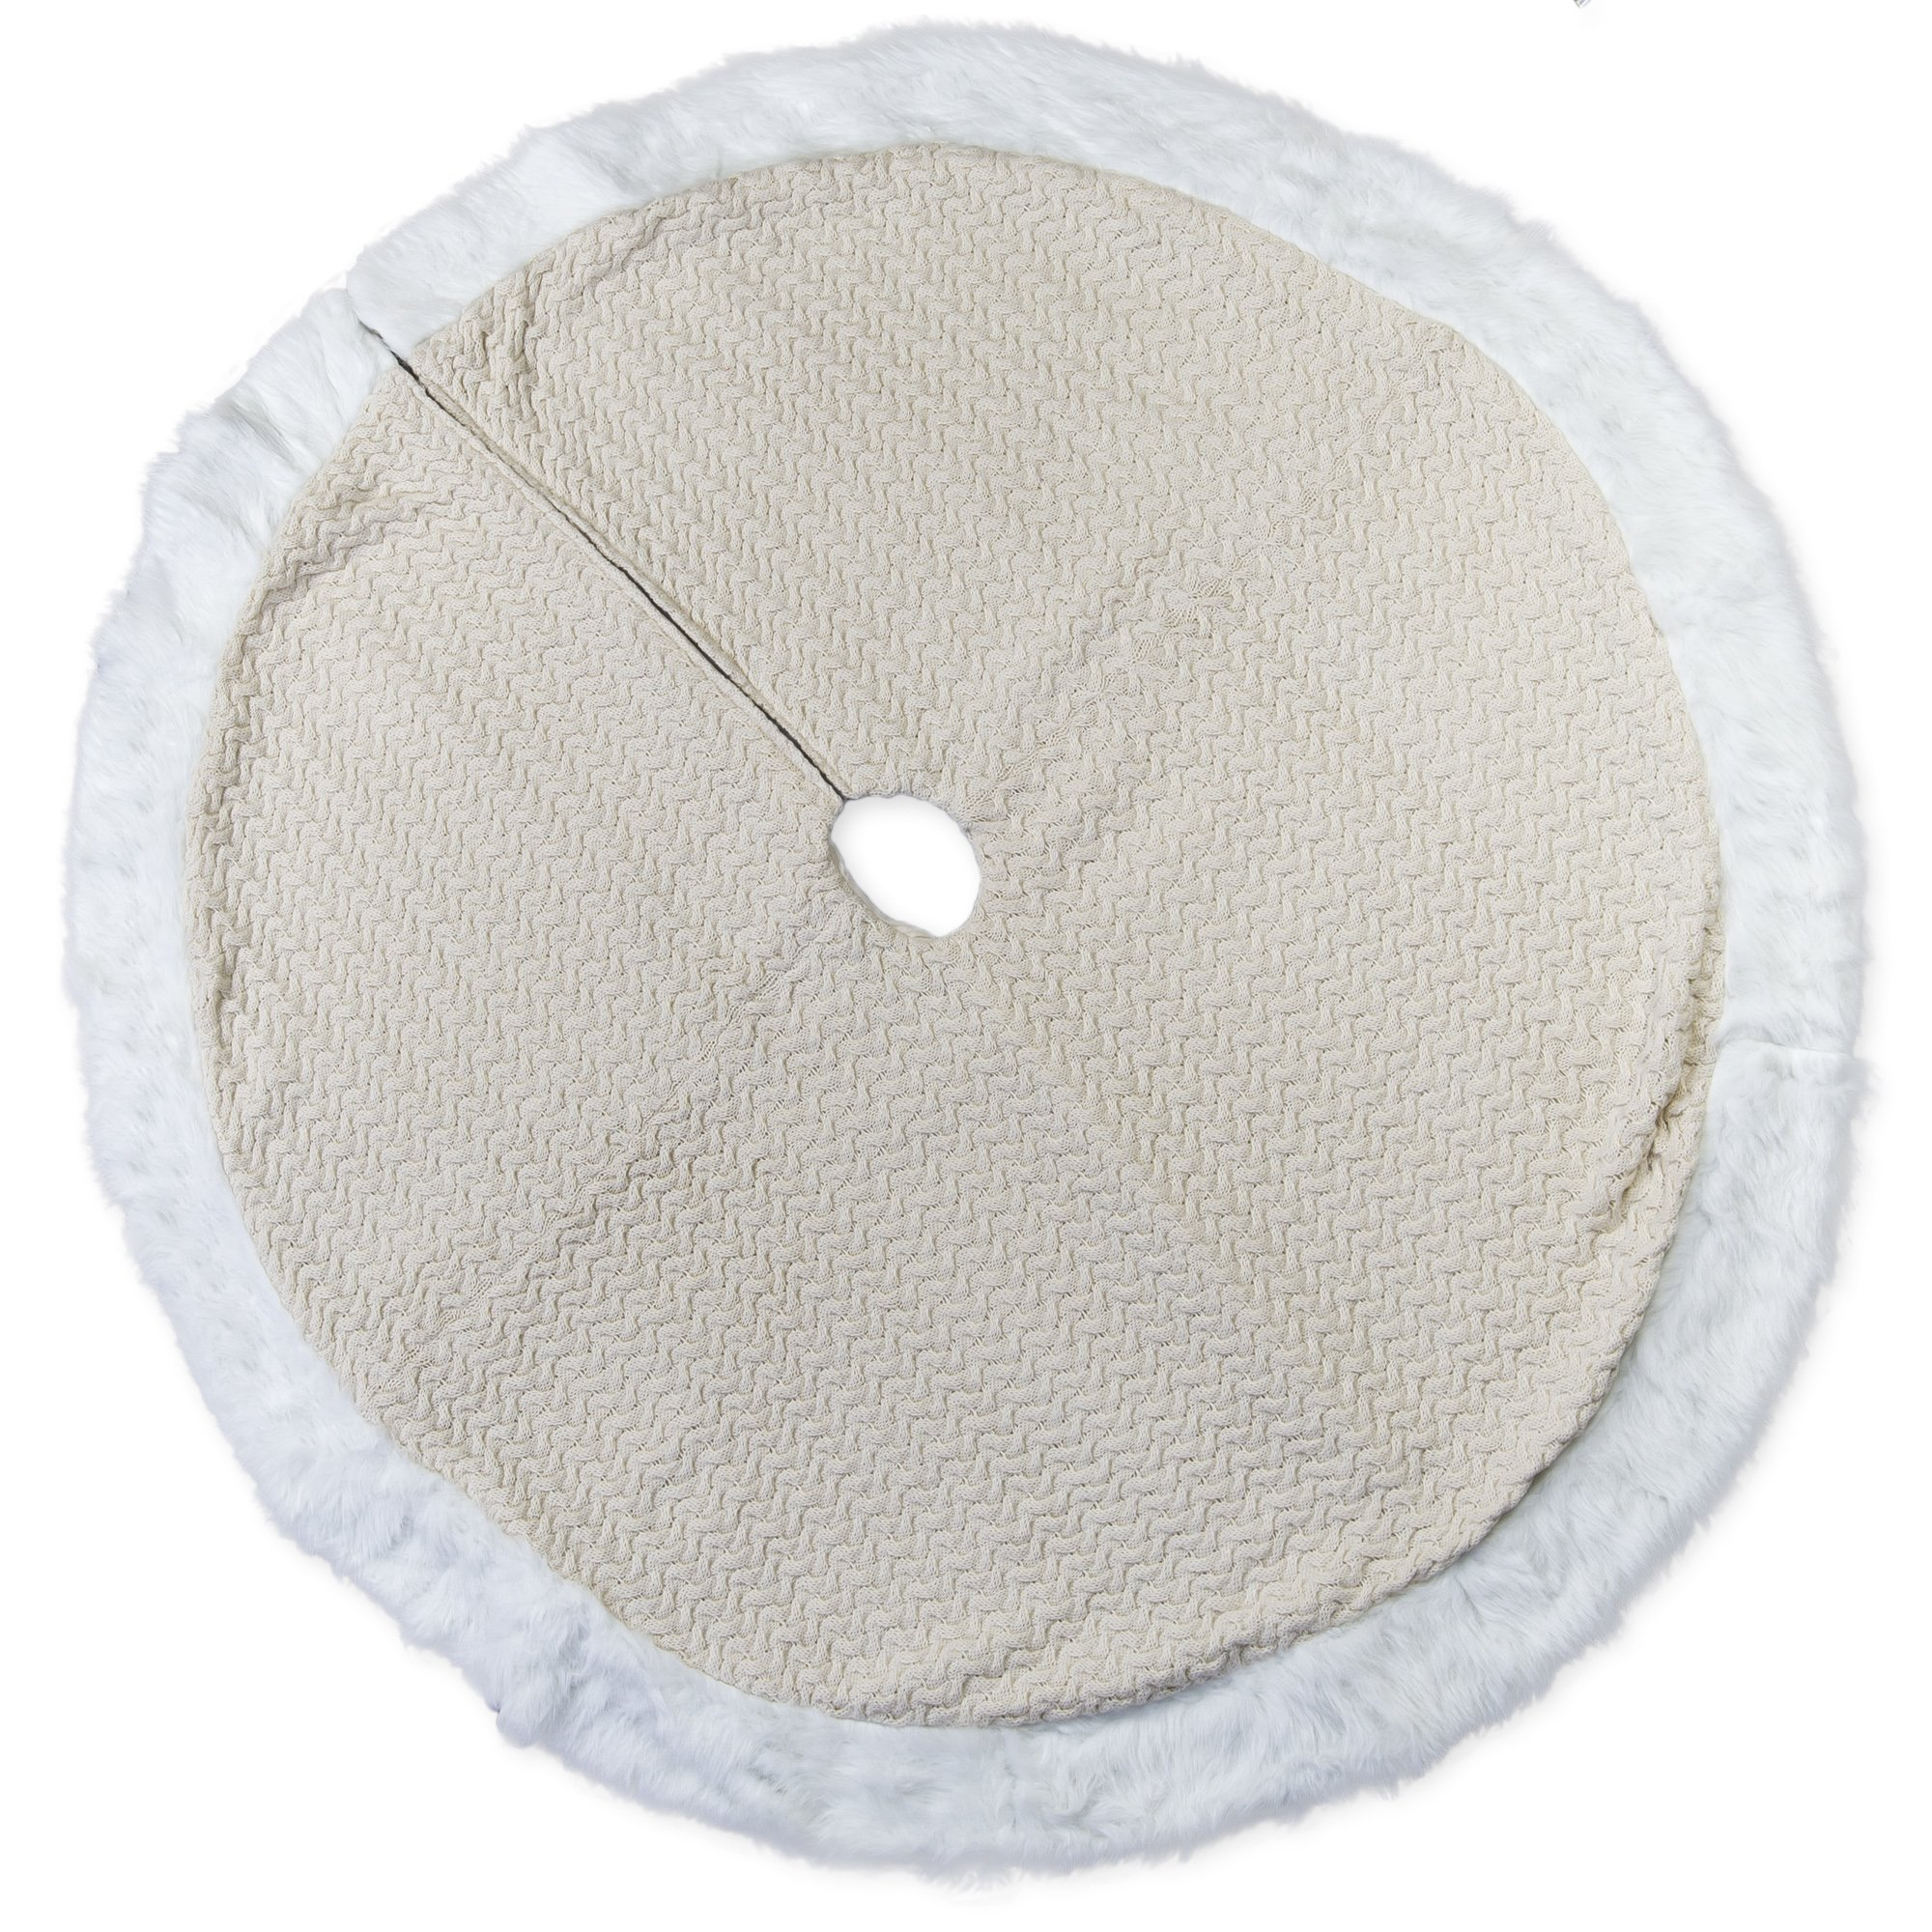 56 inch Off White Cable Knit Plush Fabric Christmas Tree Skirt with Fur Trim by Seasons Designs